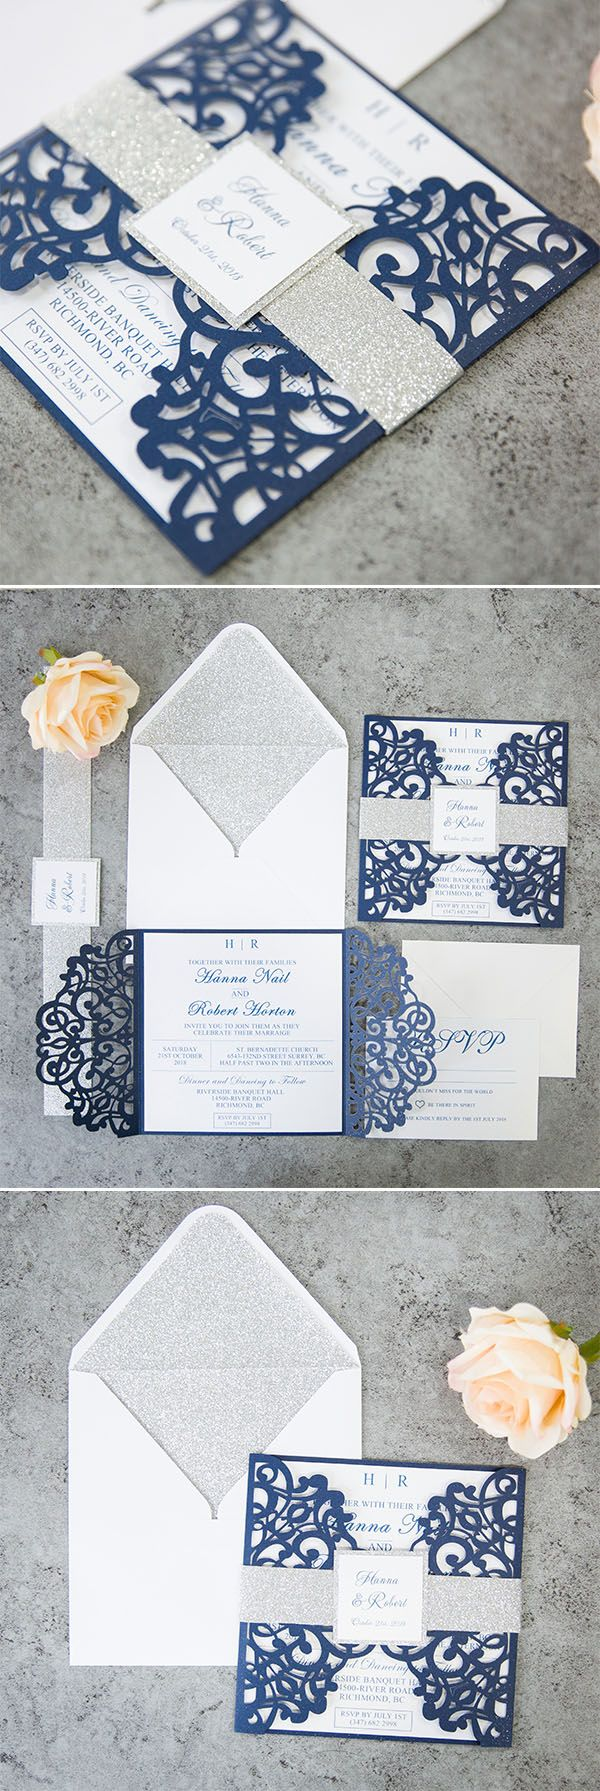 as low as $2.29 The combination of shimmer grey and navy blue is very classic for your big day. Find this laser cut wedding invitation with a belly band and little tag at elegantweddinginvites.com!